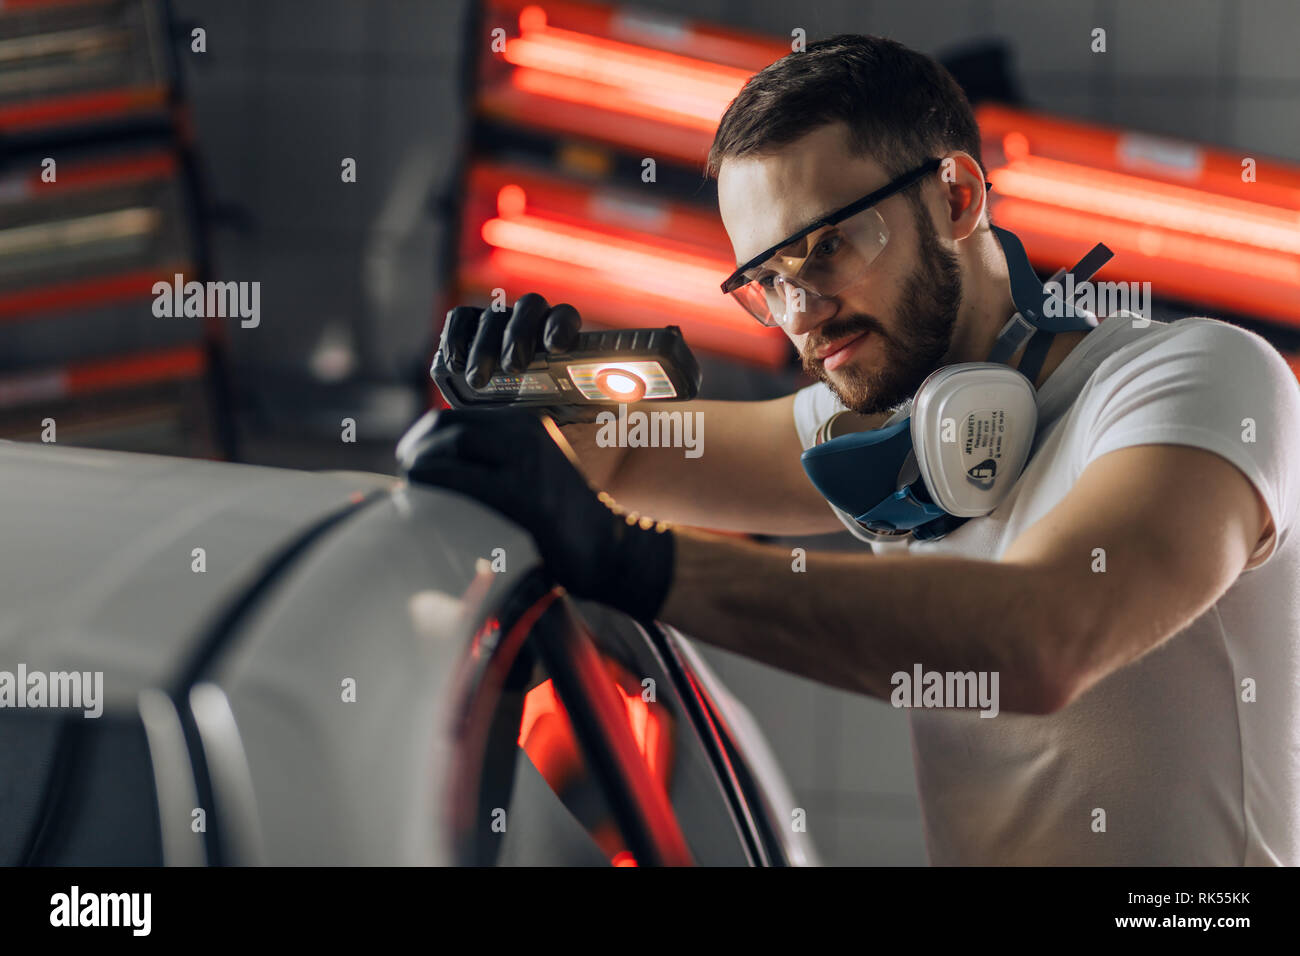 man working in the car repair shop. close up photo. Stock Photo